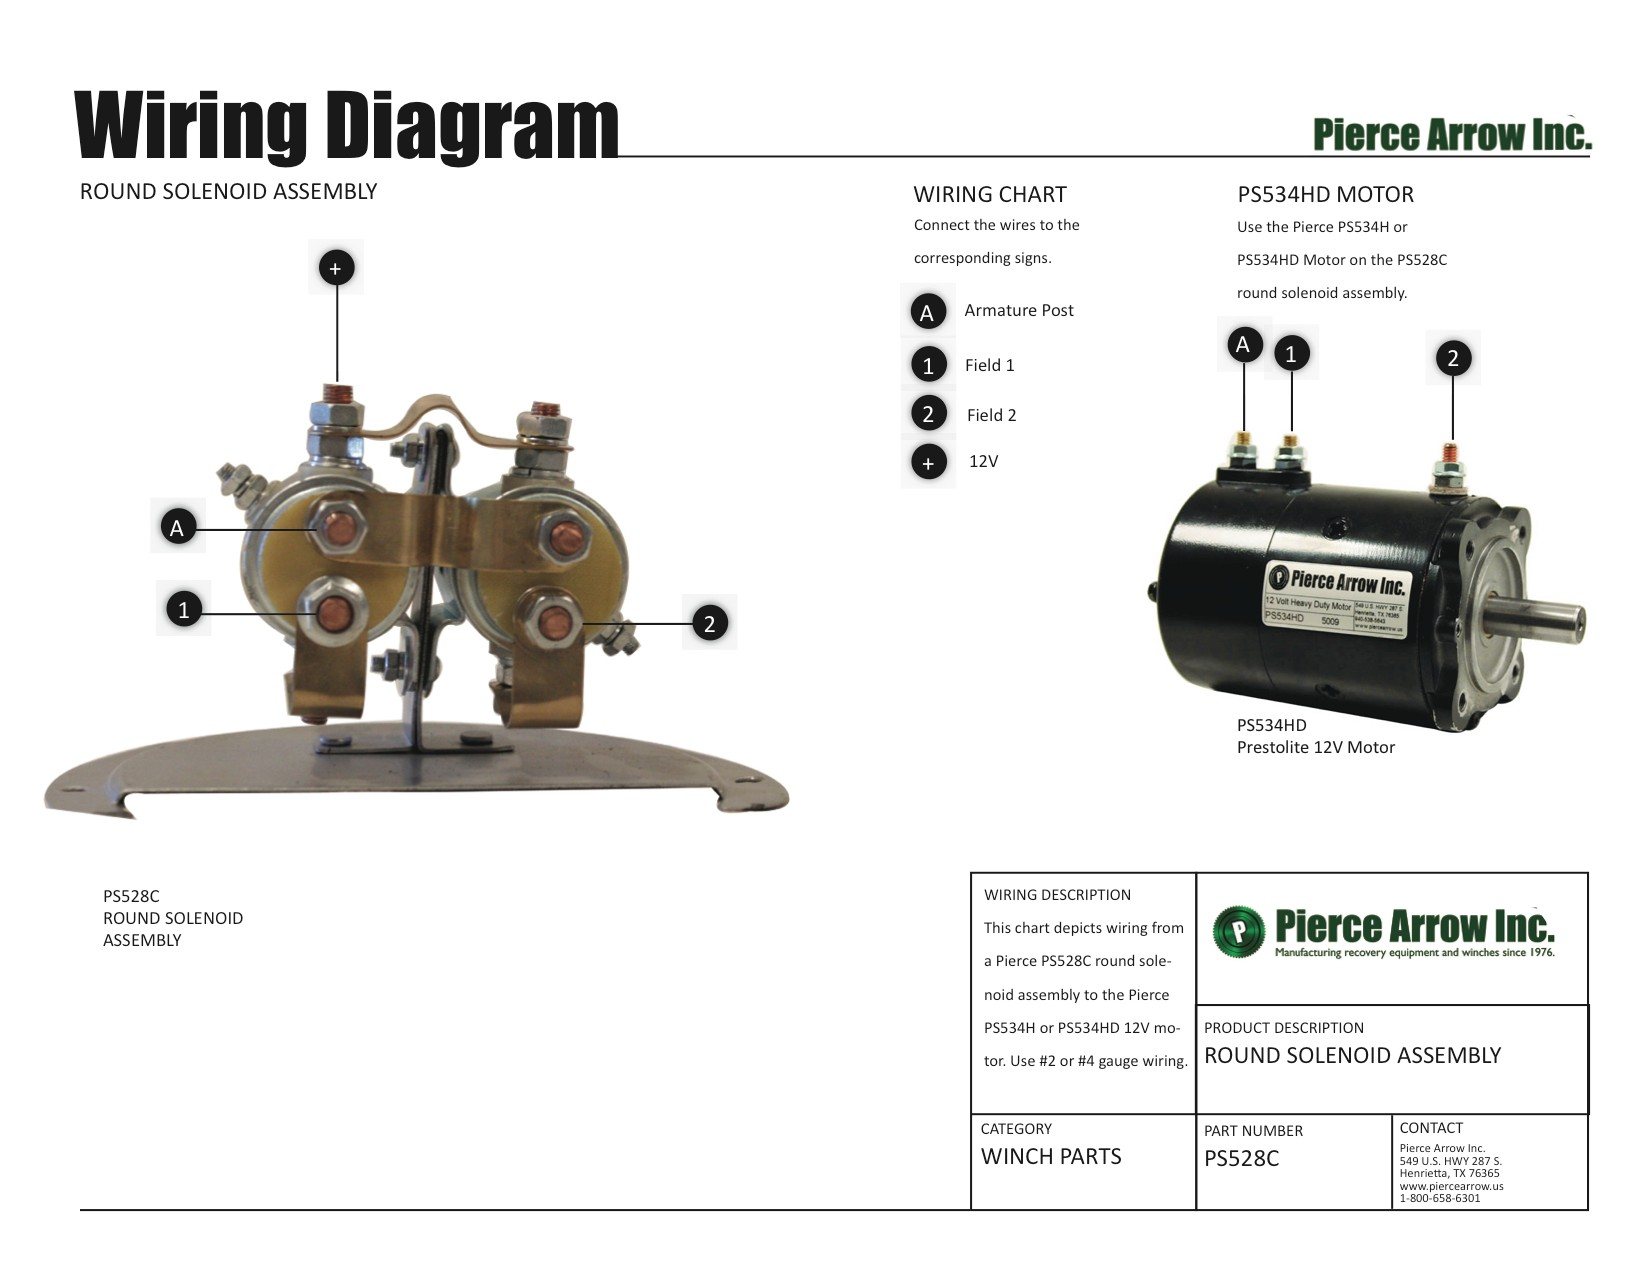 Pierce Fire Truck Wiring Diagram My Schematic Amazing Solenoid Contemporary Everything You Need Of